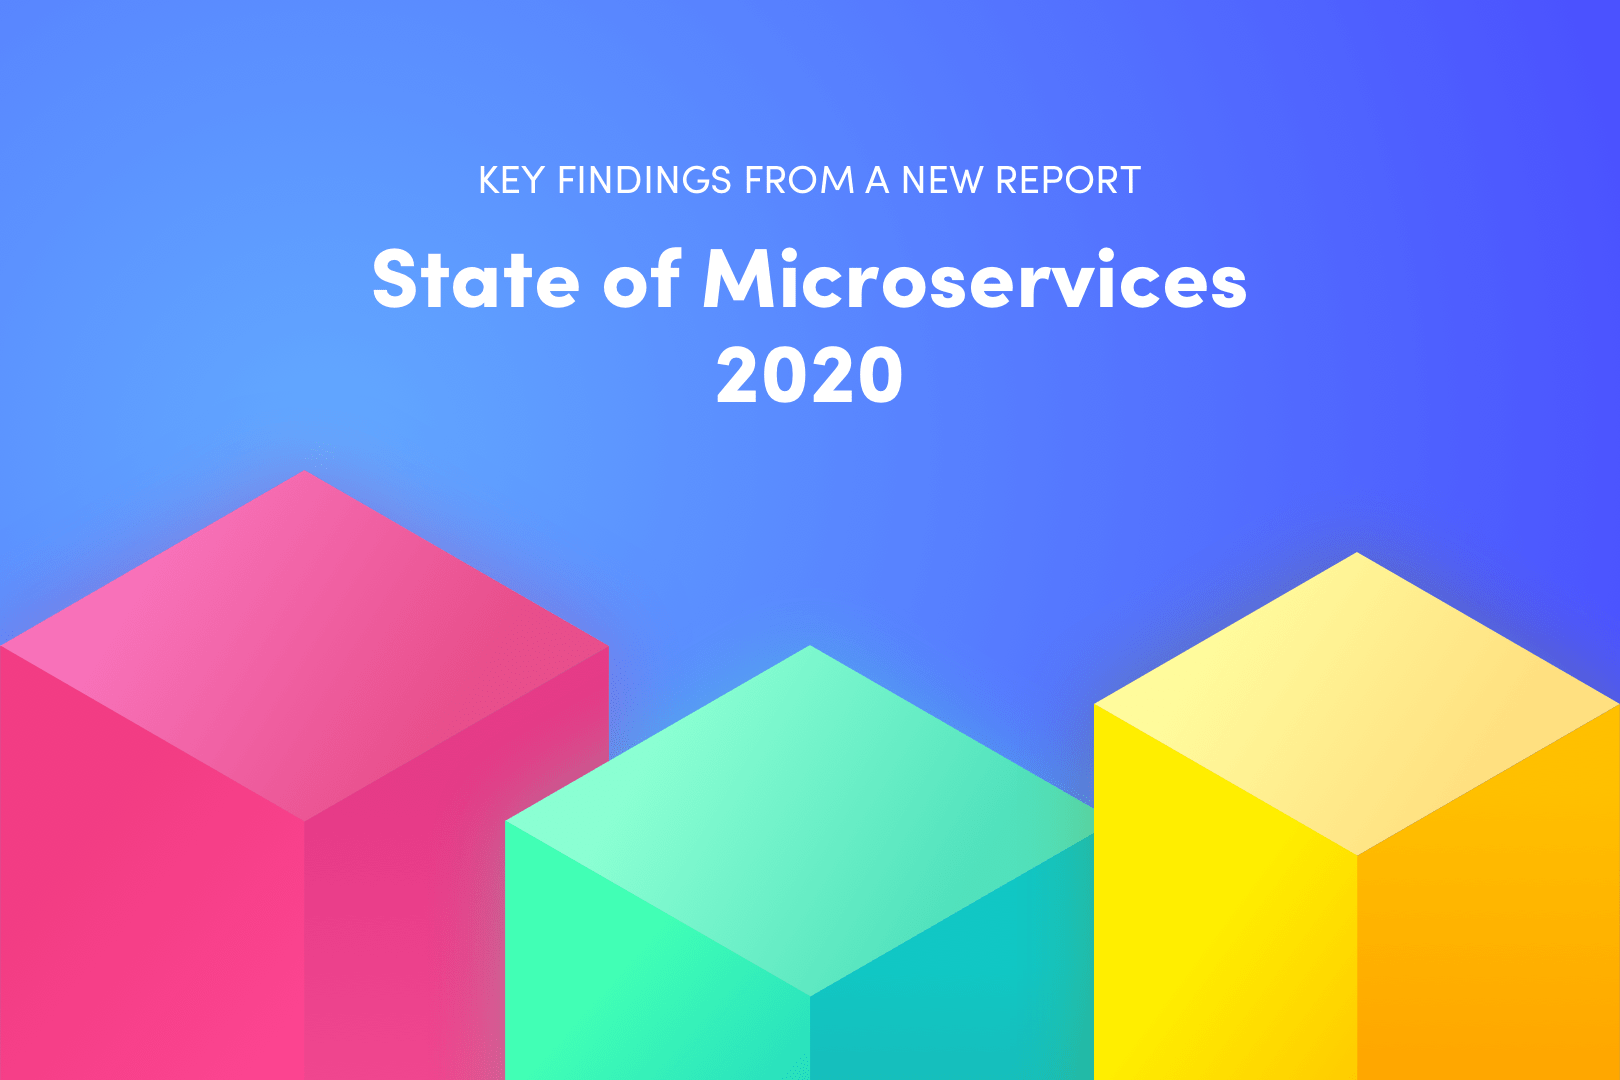 What are microservices and their state in 2020? Six key findings from the brand new report